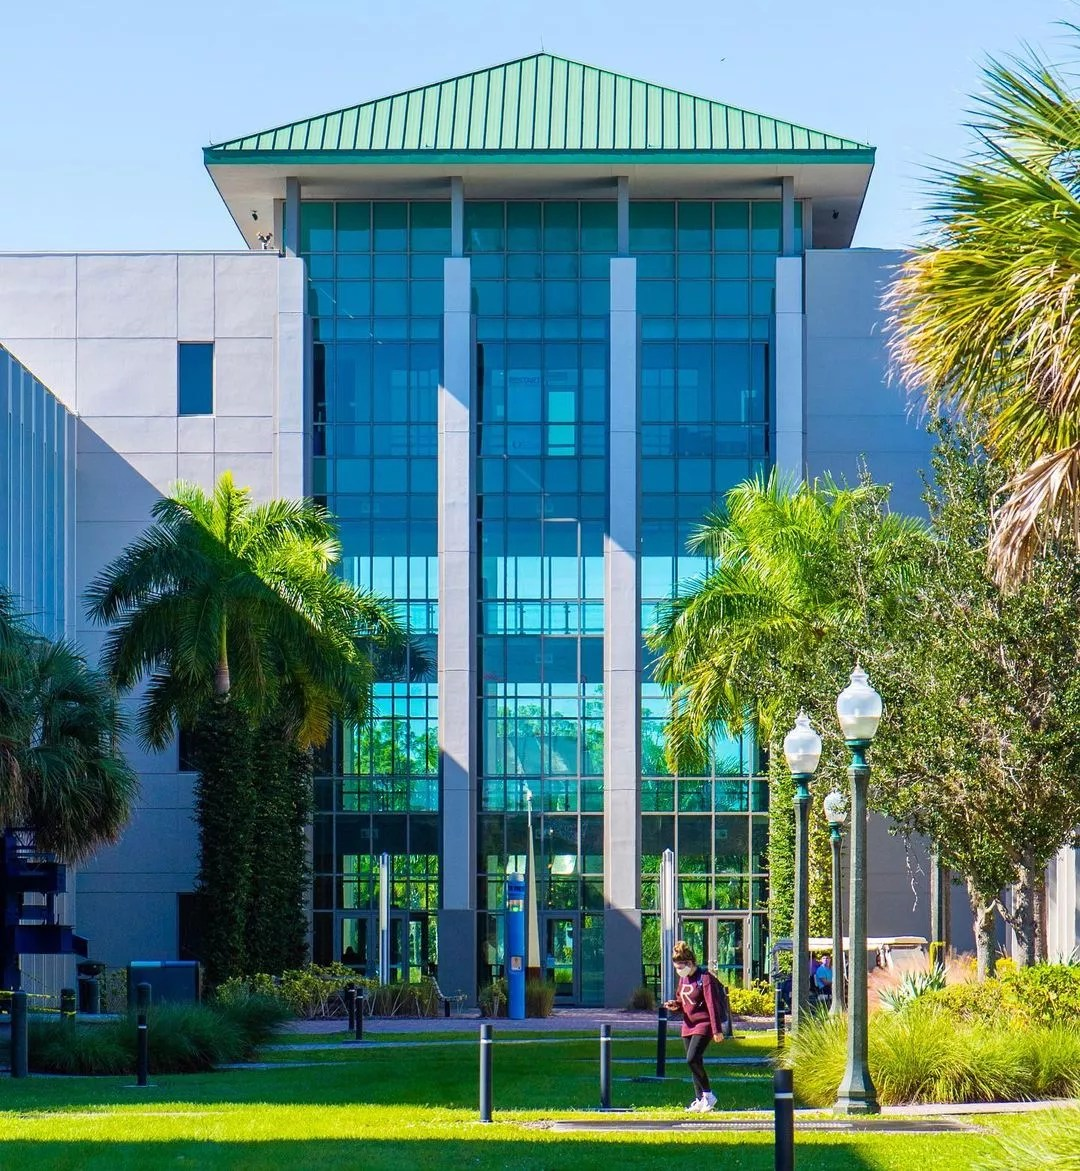 Exterior Photo of Florida Gulf Coast University in Fort Myers, FL. Photo by Instagram user @fgcu